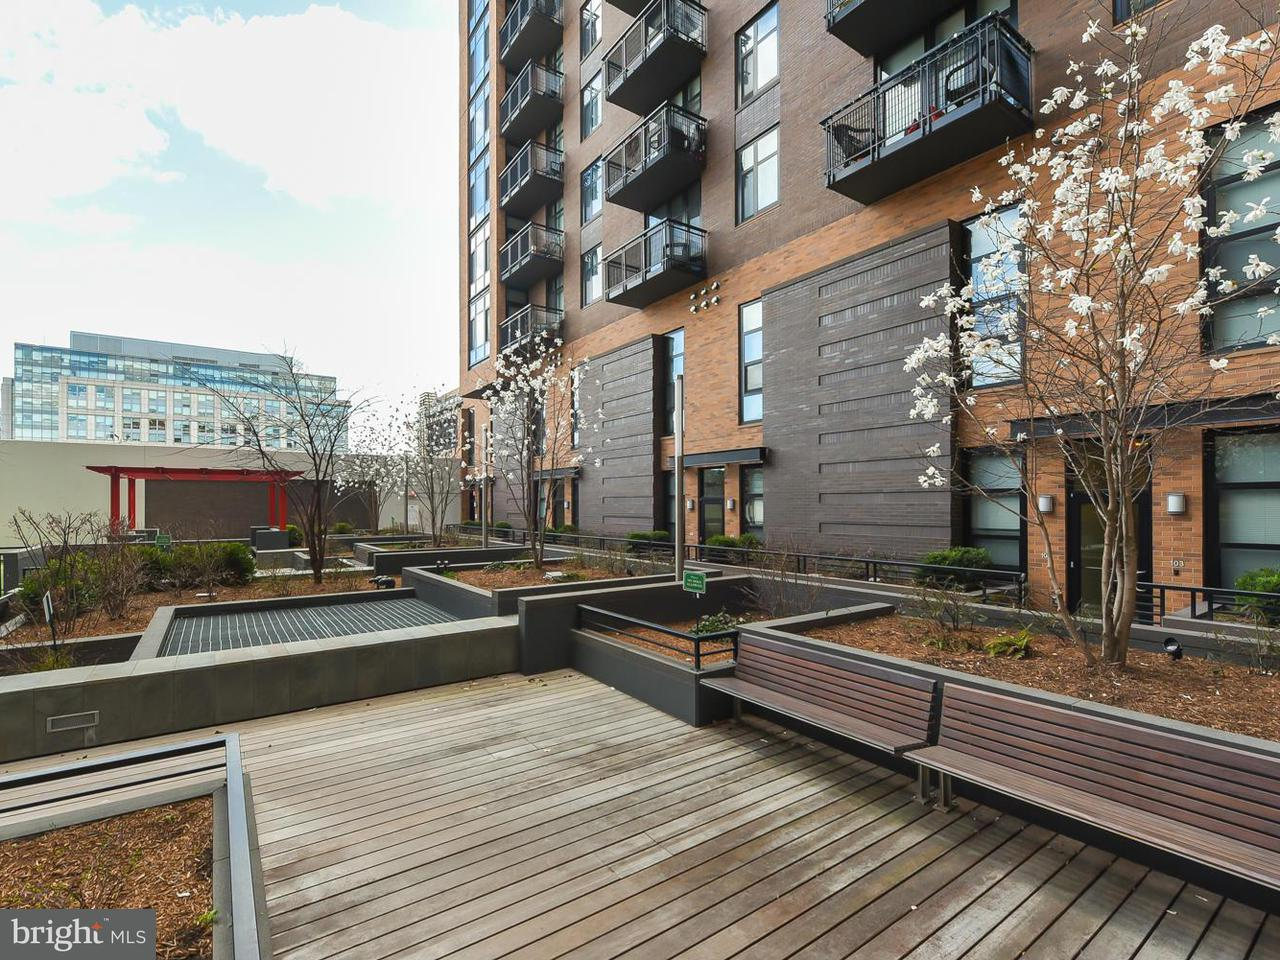 Additional photo for property listing at 2 M St NE #524  Washington, District Of Columbia 20002 United States